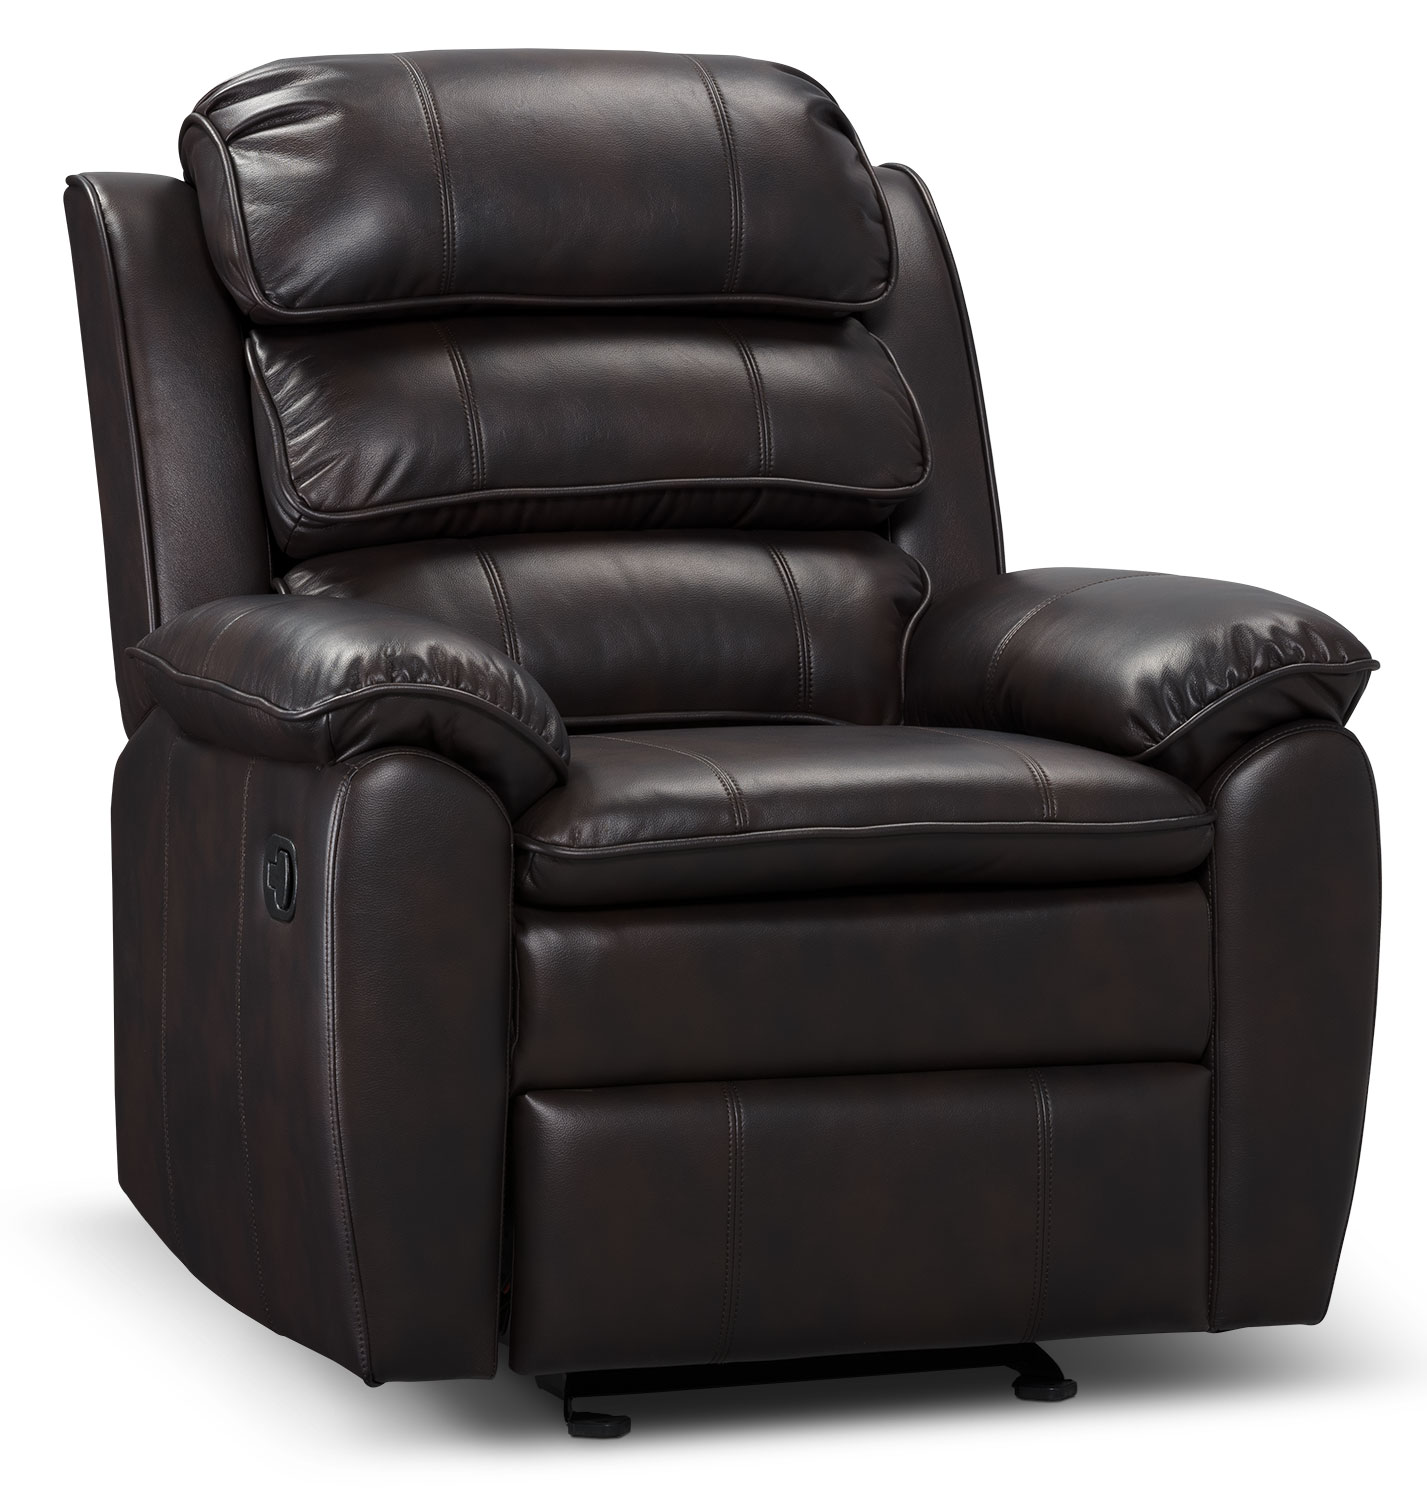 leather glider chair adam leather look fabric reclining glider chair brown 16636 | 472095